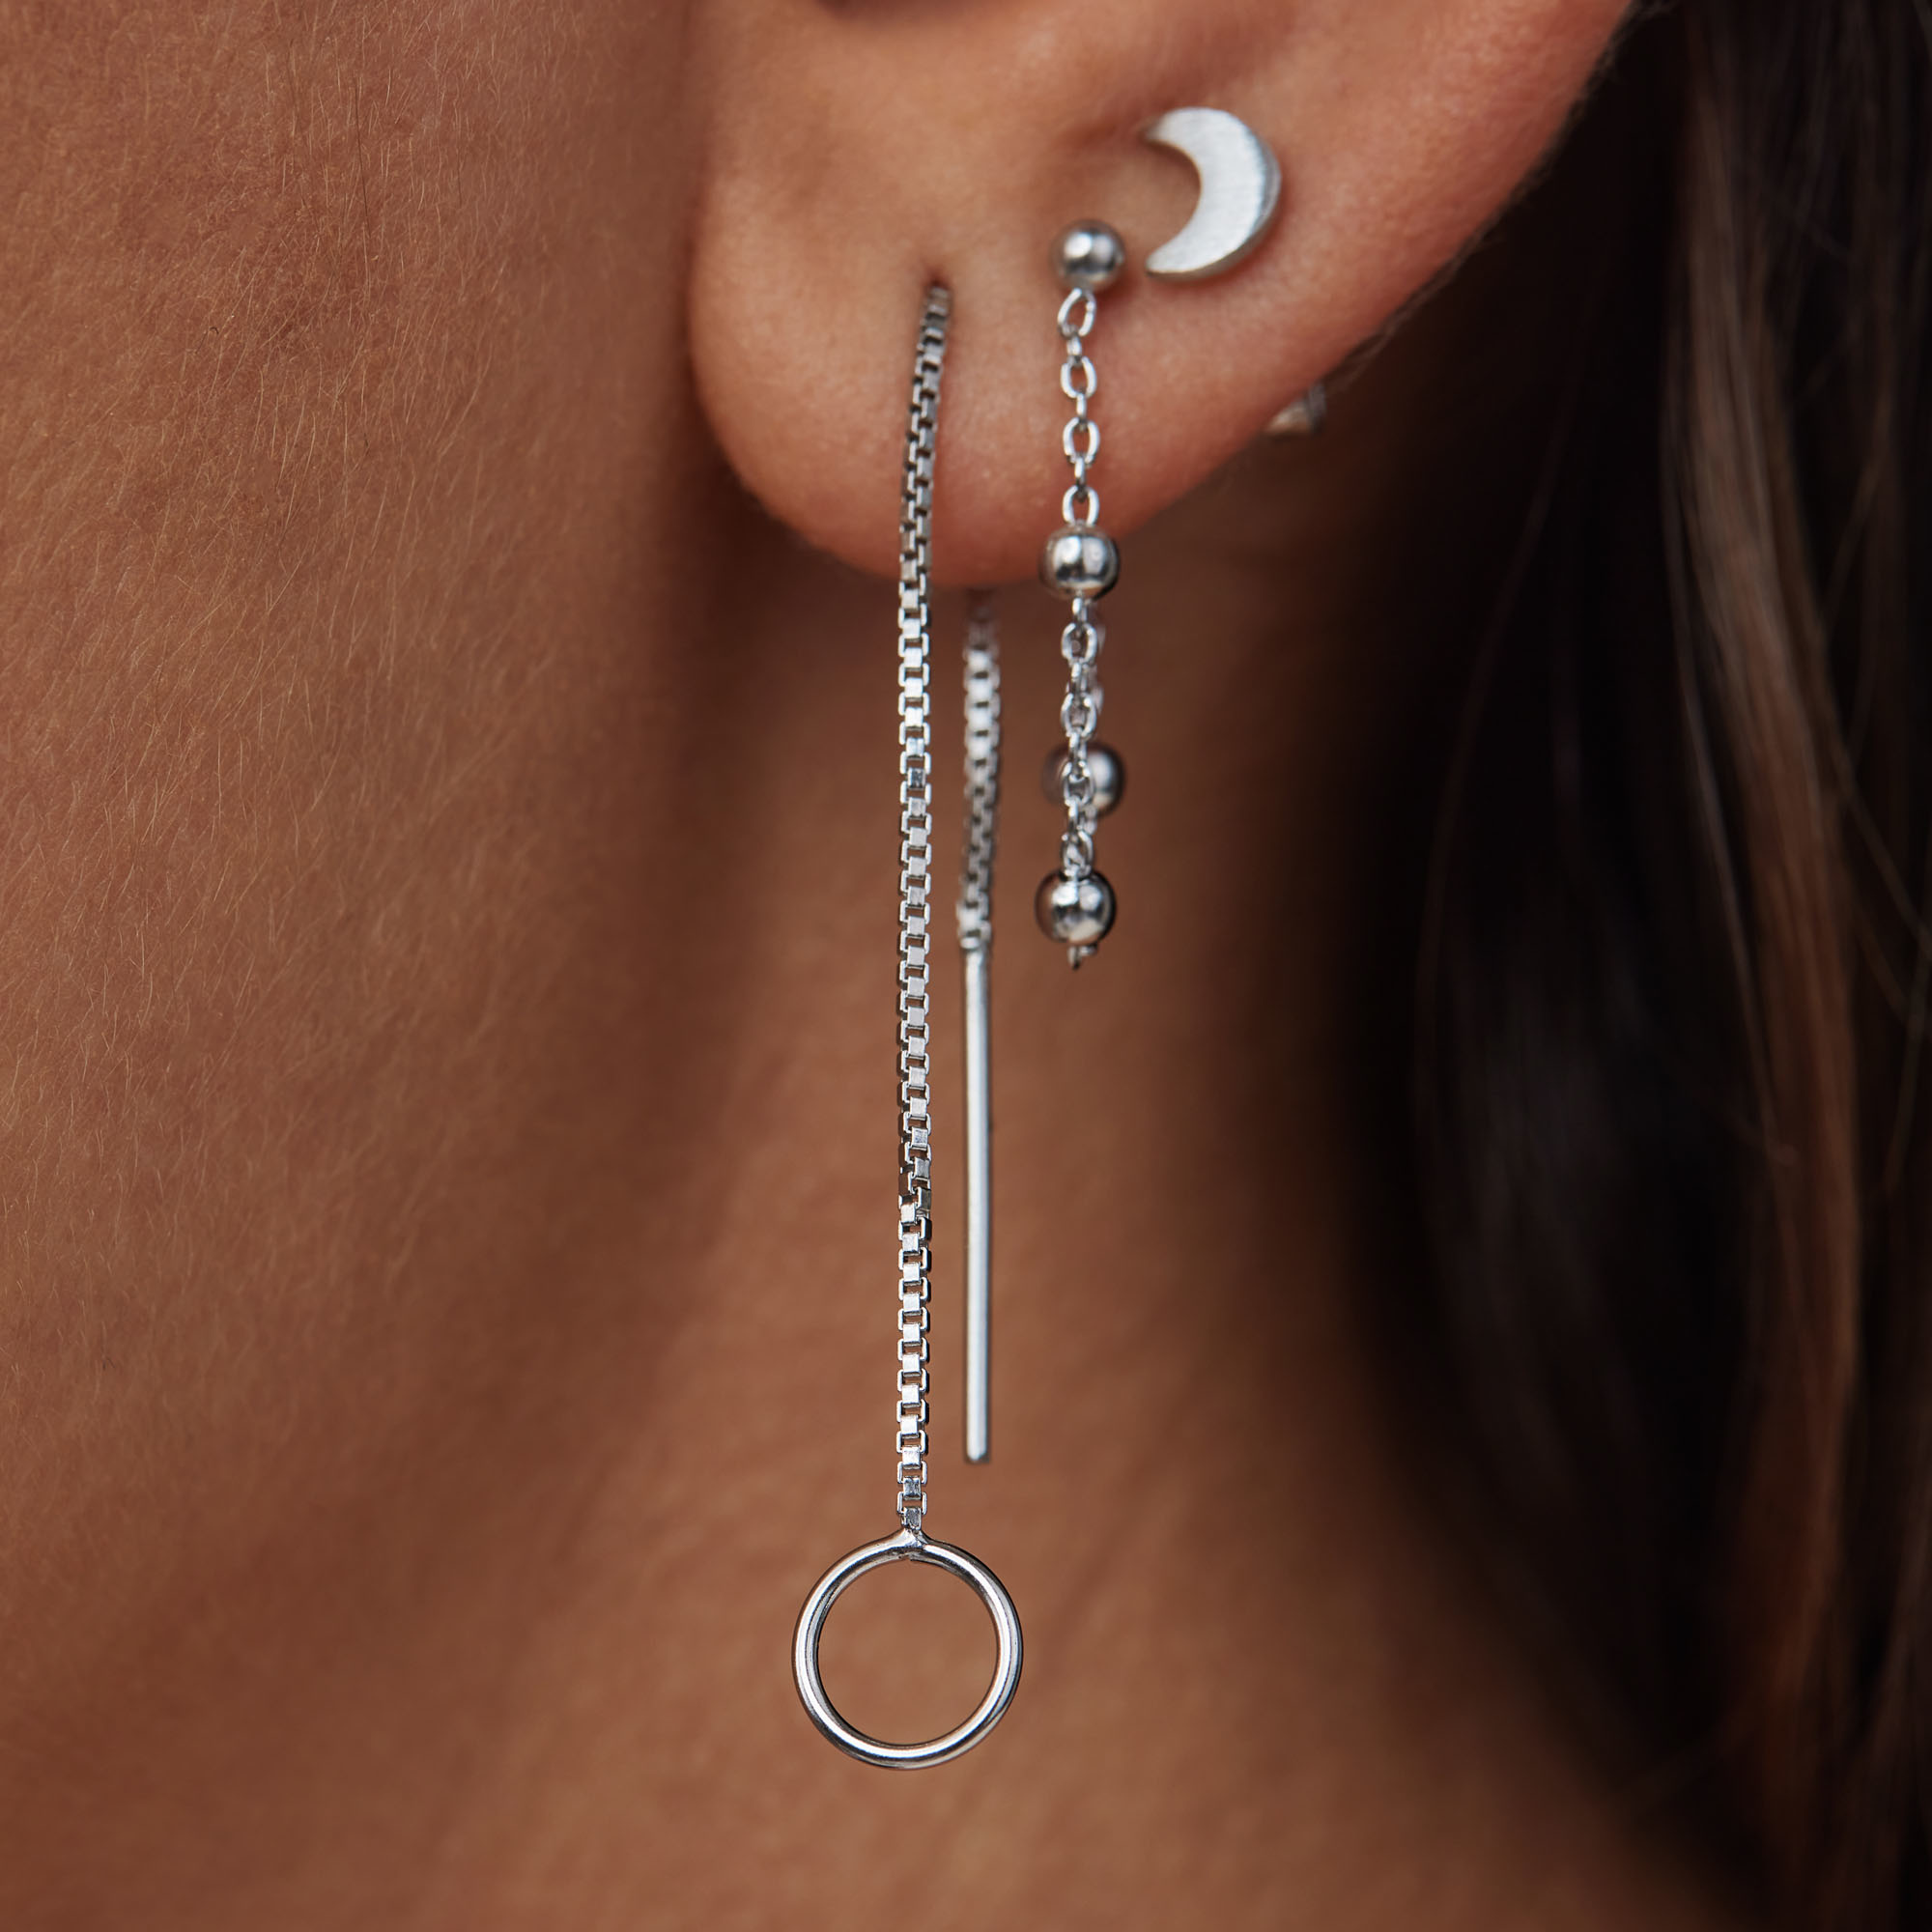 Violet Hamden Luna 925 sterling silver drop earrings with rounds